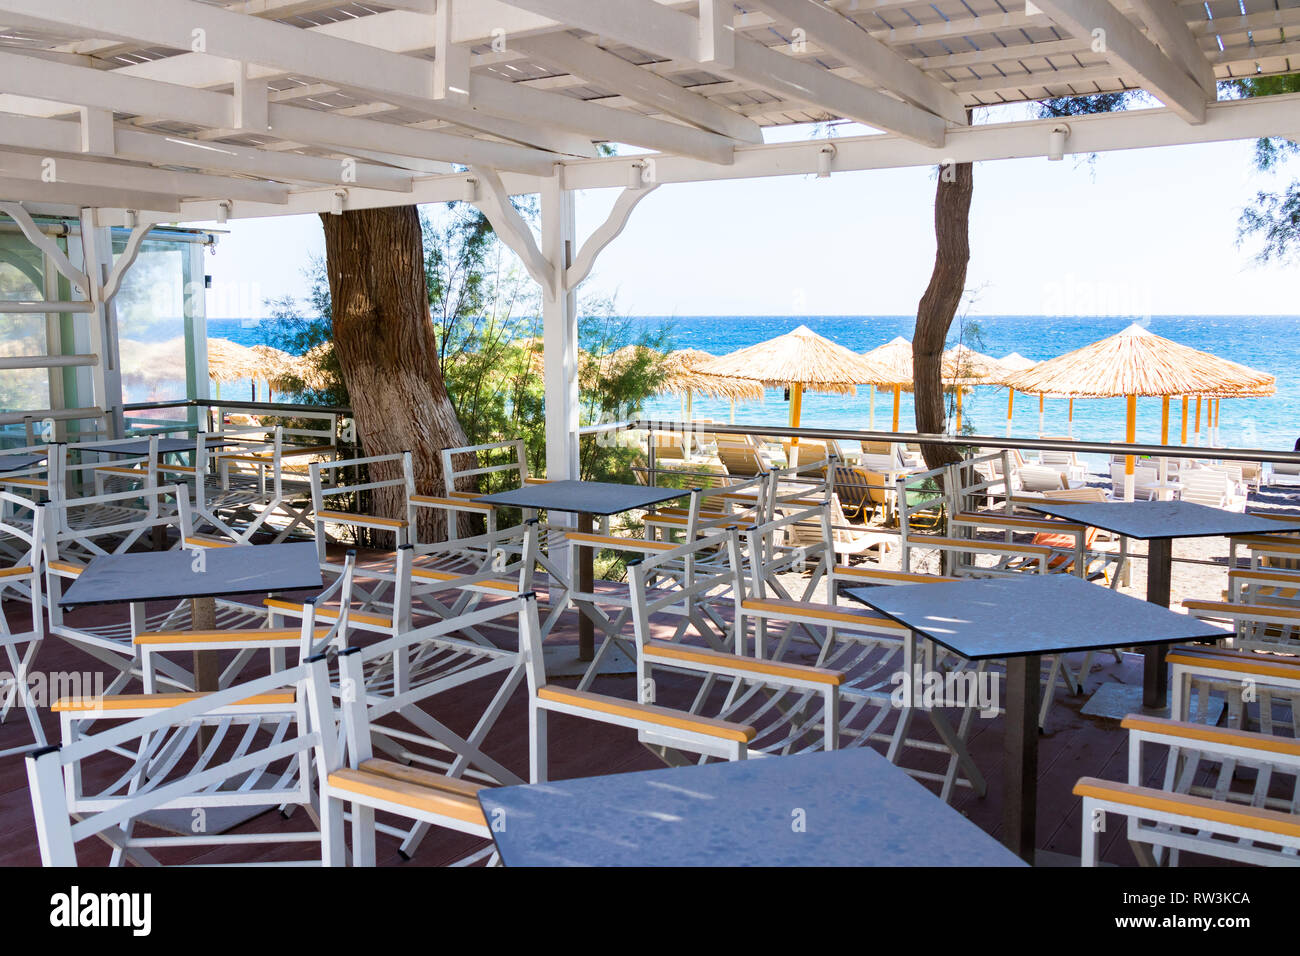 Restaurant Terrace In Front Of The Beach In Kamari On The Island Of Santorini Stock Photo Alamy